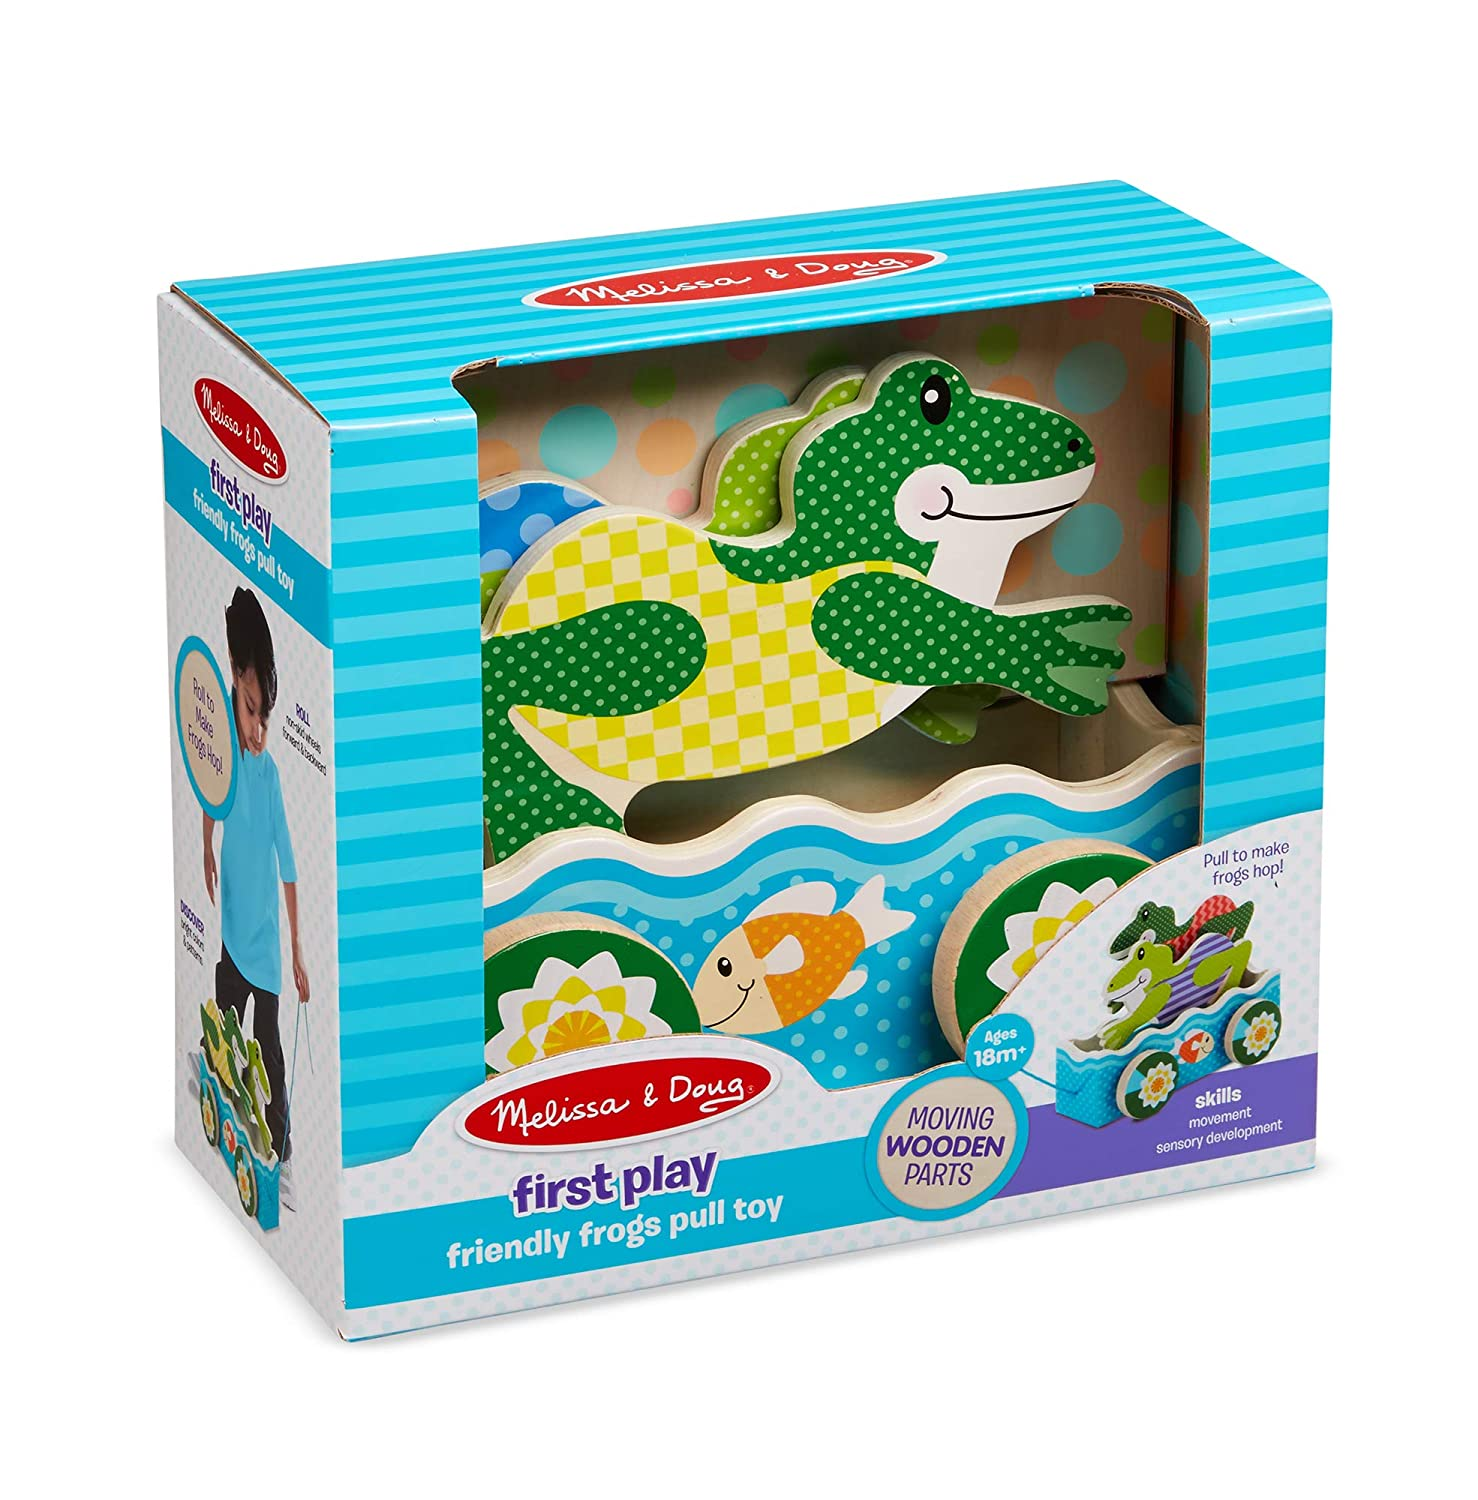 Multicolor Melissa /& Doug 3615 First Play Friendly Frogs Wooden Pull Toy